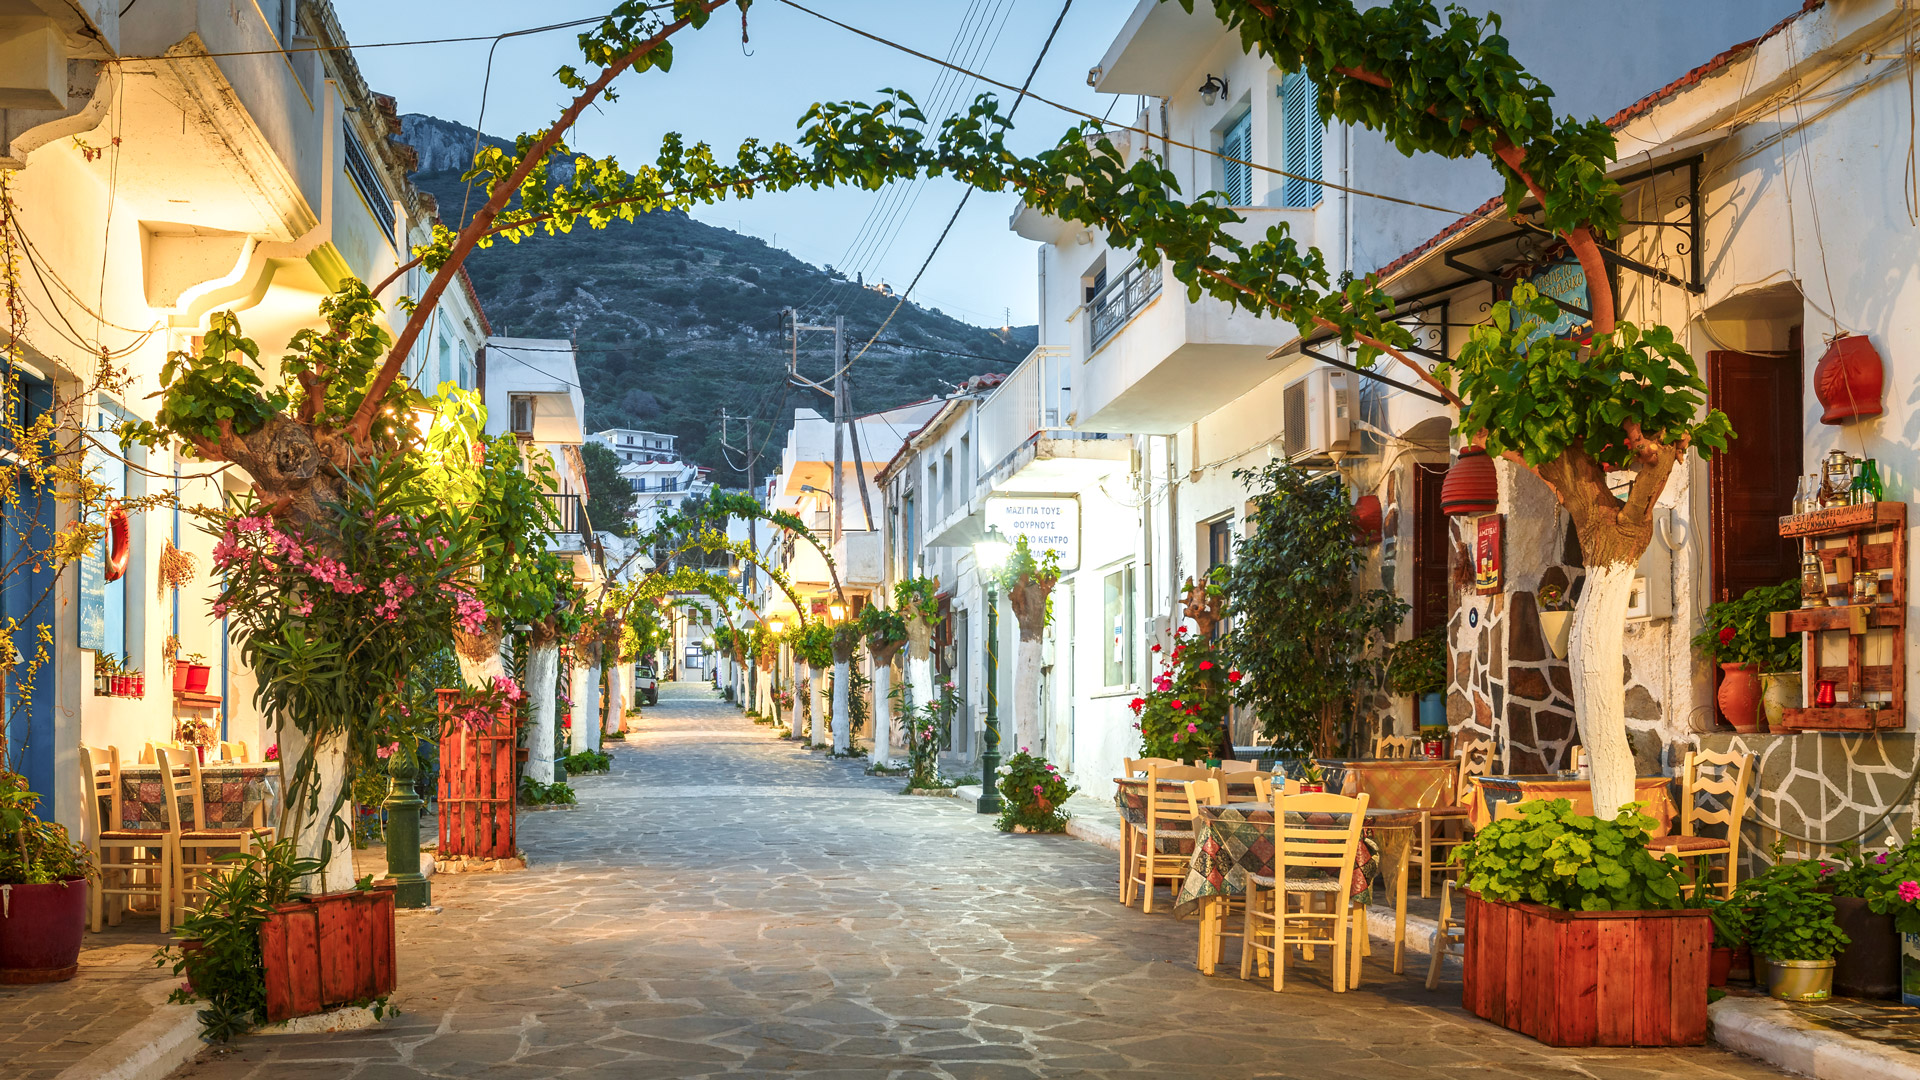 iew of the main street with shops and a restaurant in Fourni island, Ikaria